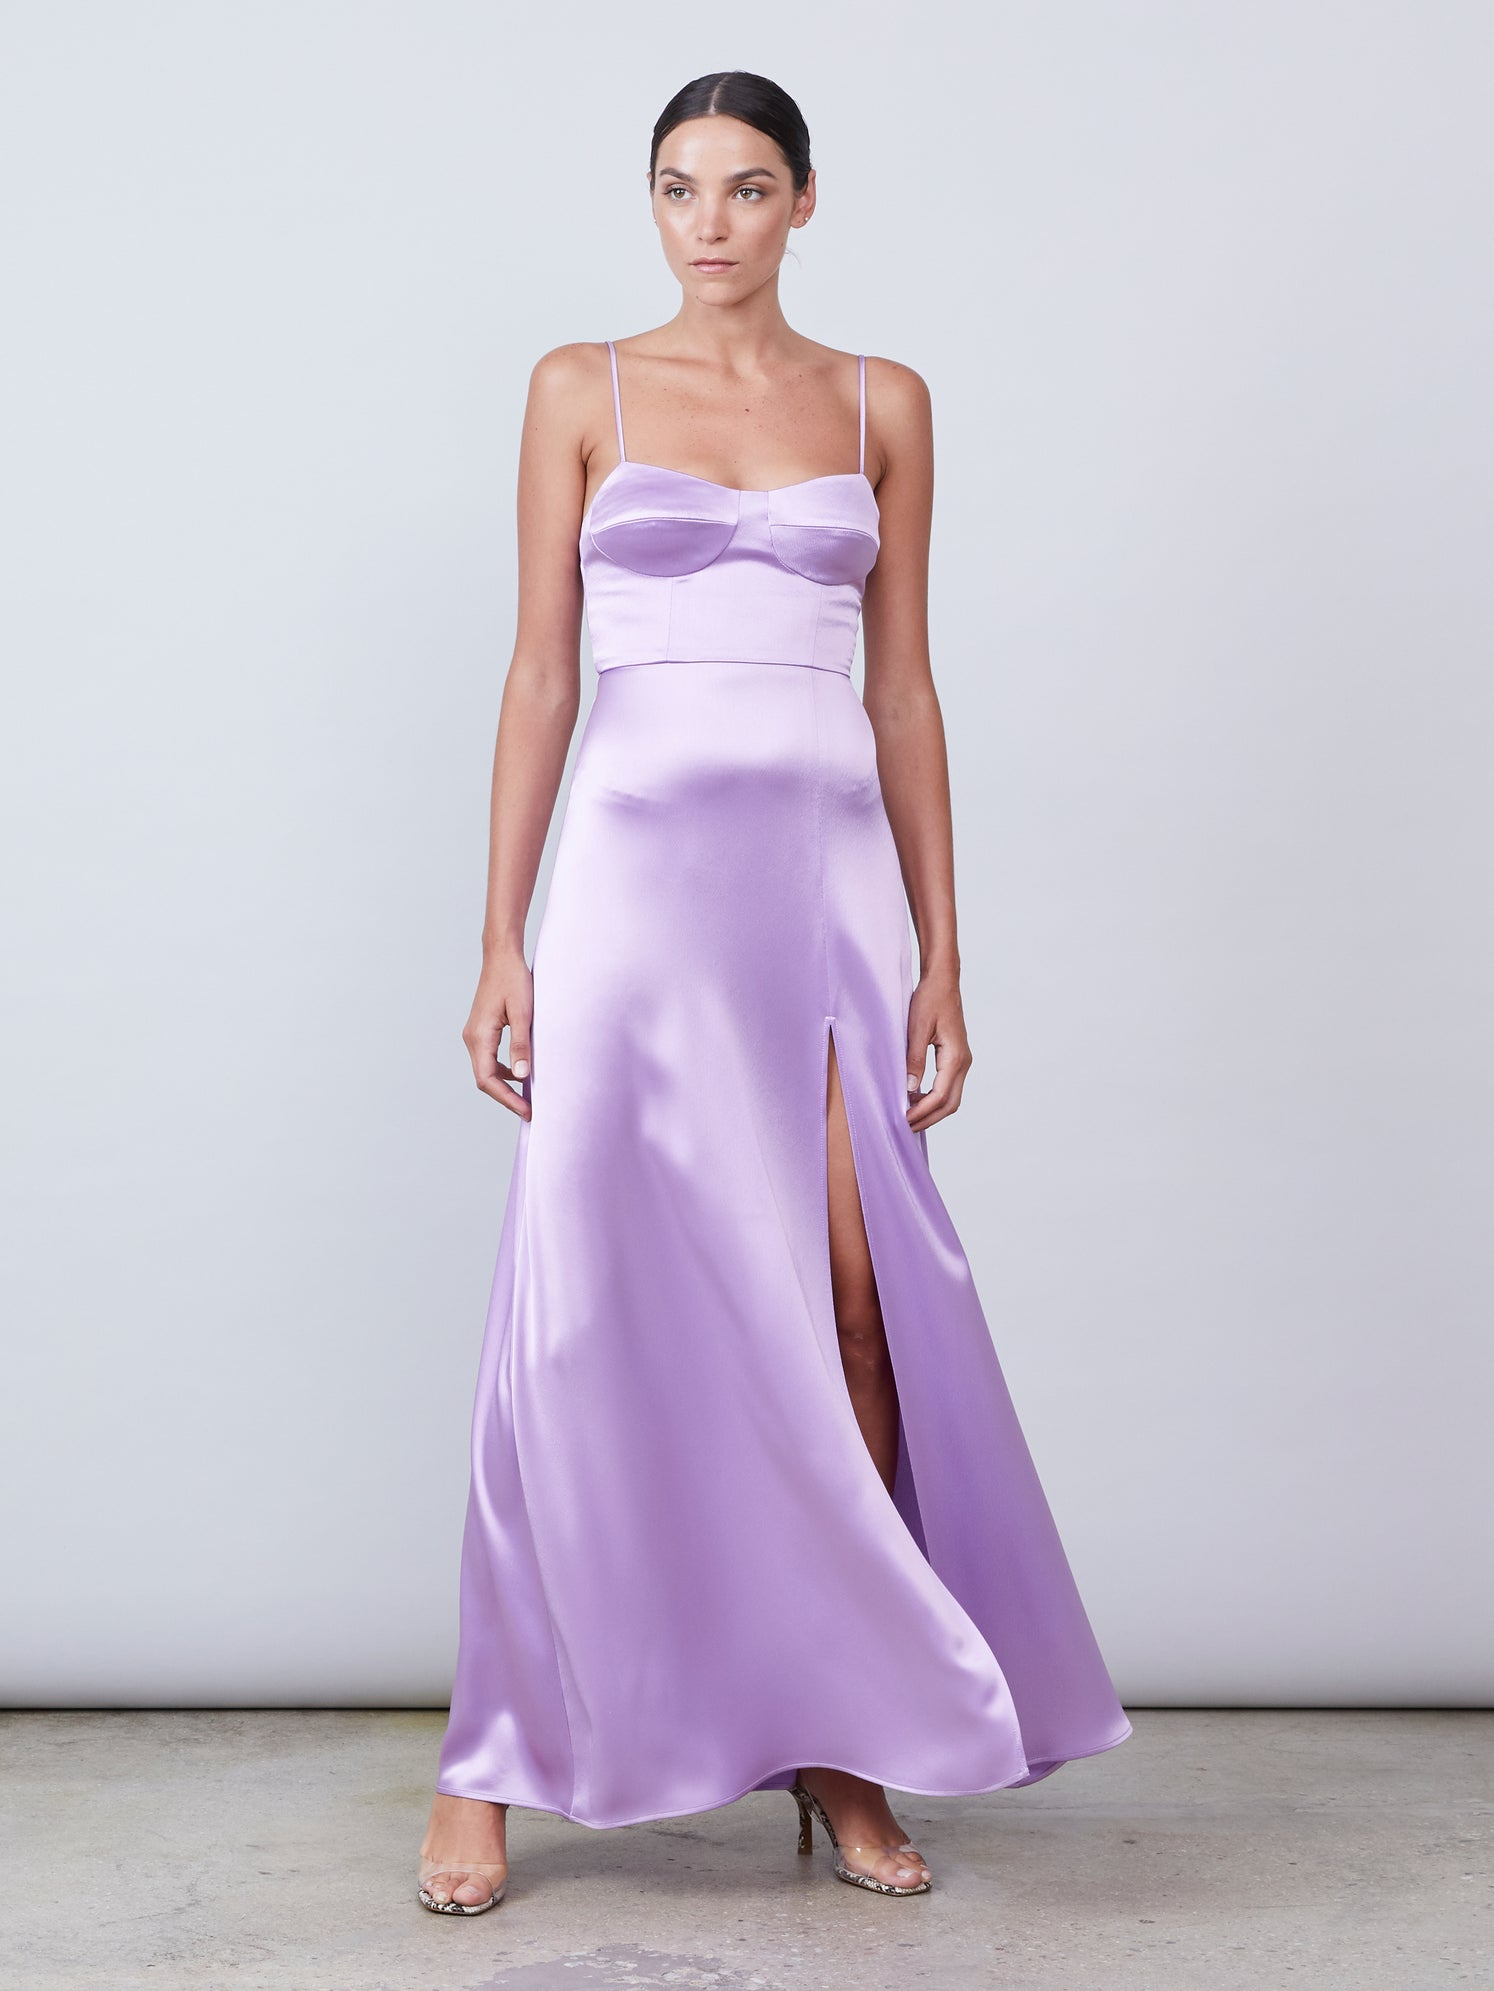 Satin bustier gown with knee-high front slit